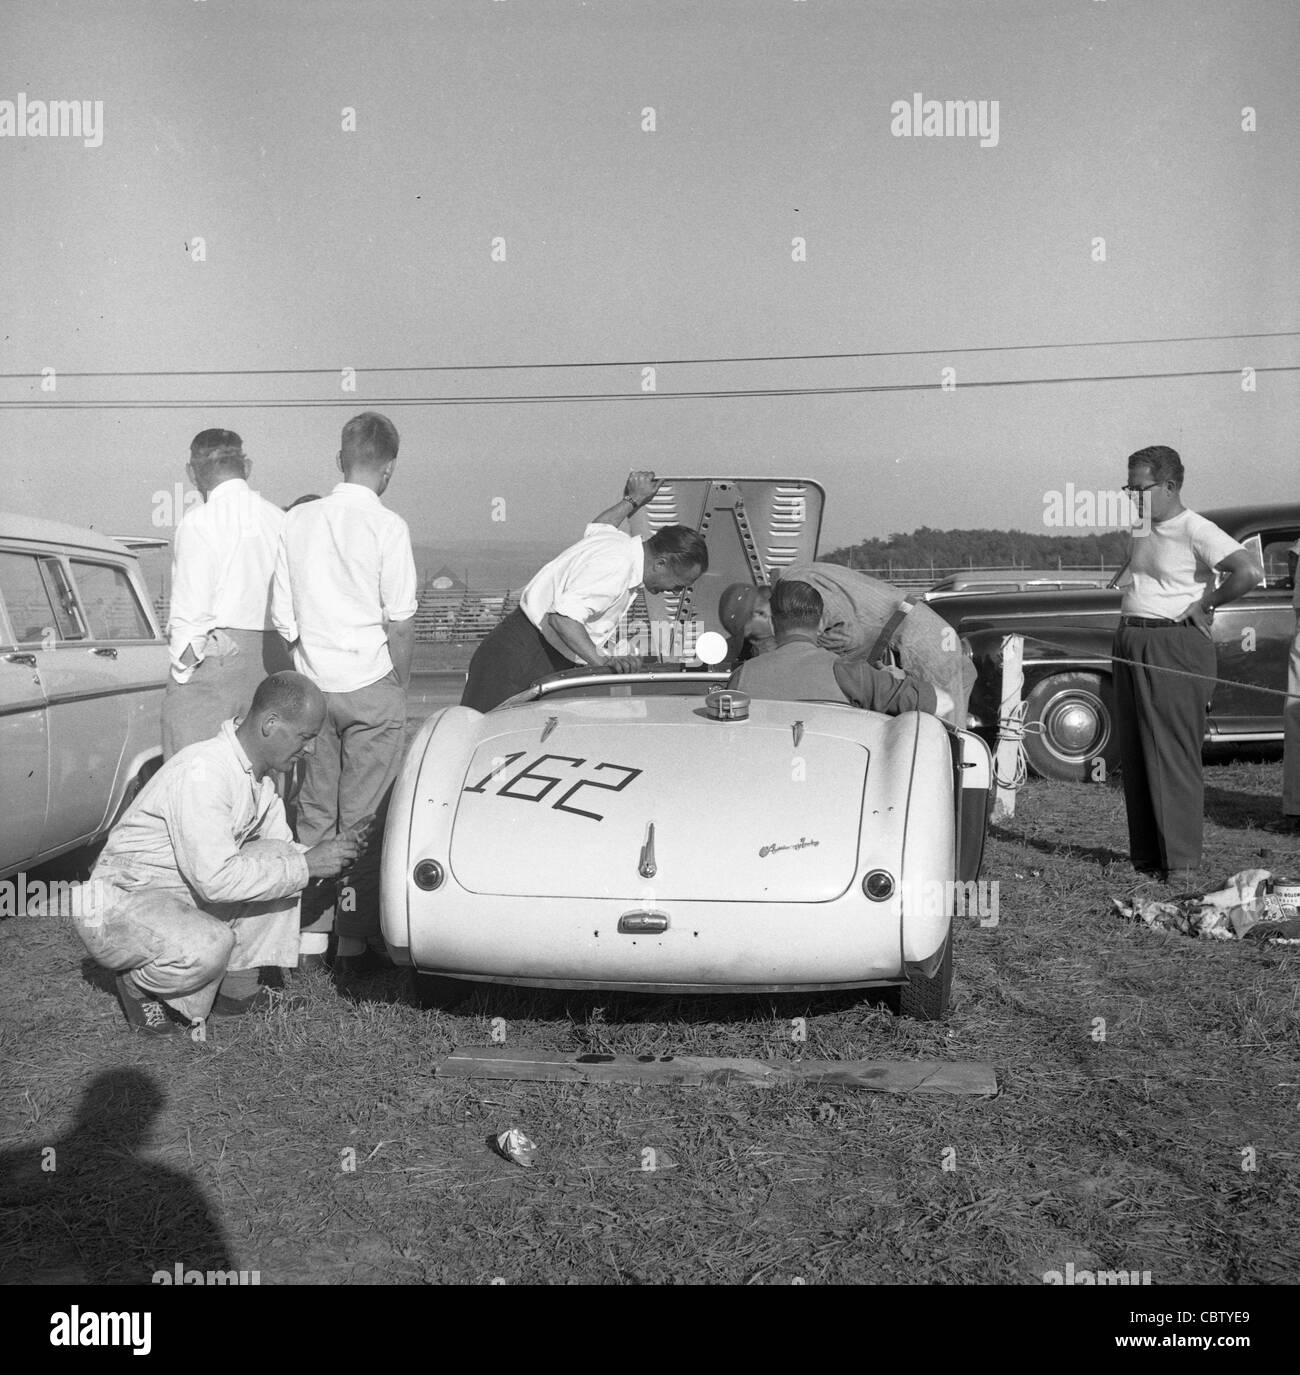 Sports Car Club Of America Races From The Early 1960s Or Late 1950s Stock  Photo: 41730369   Alamy